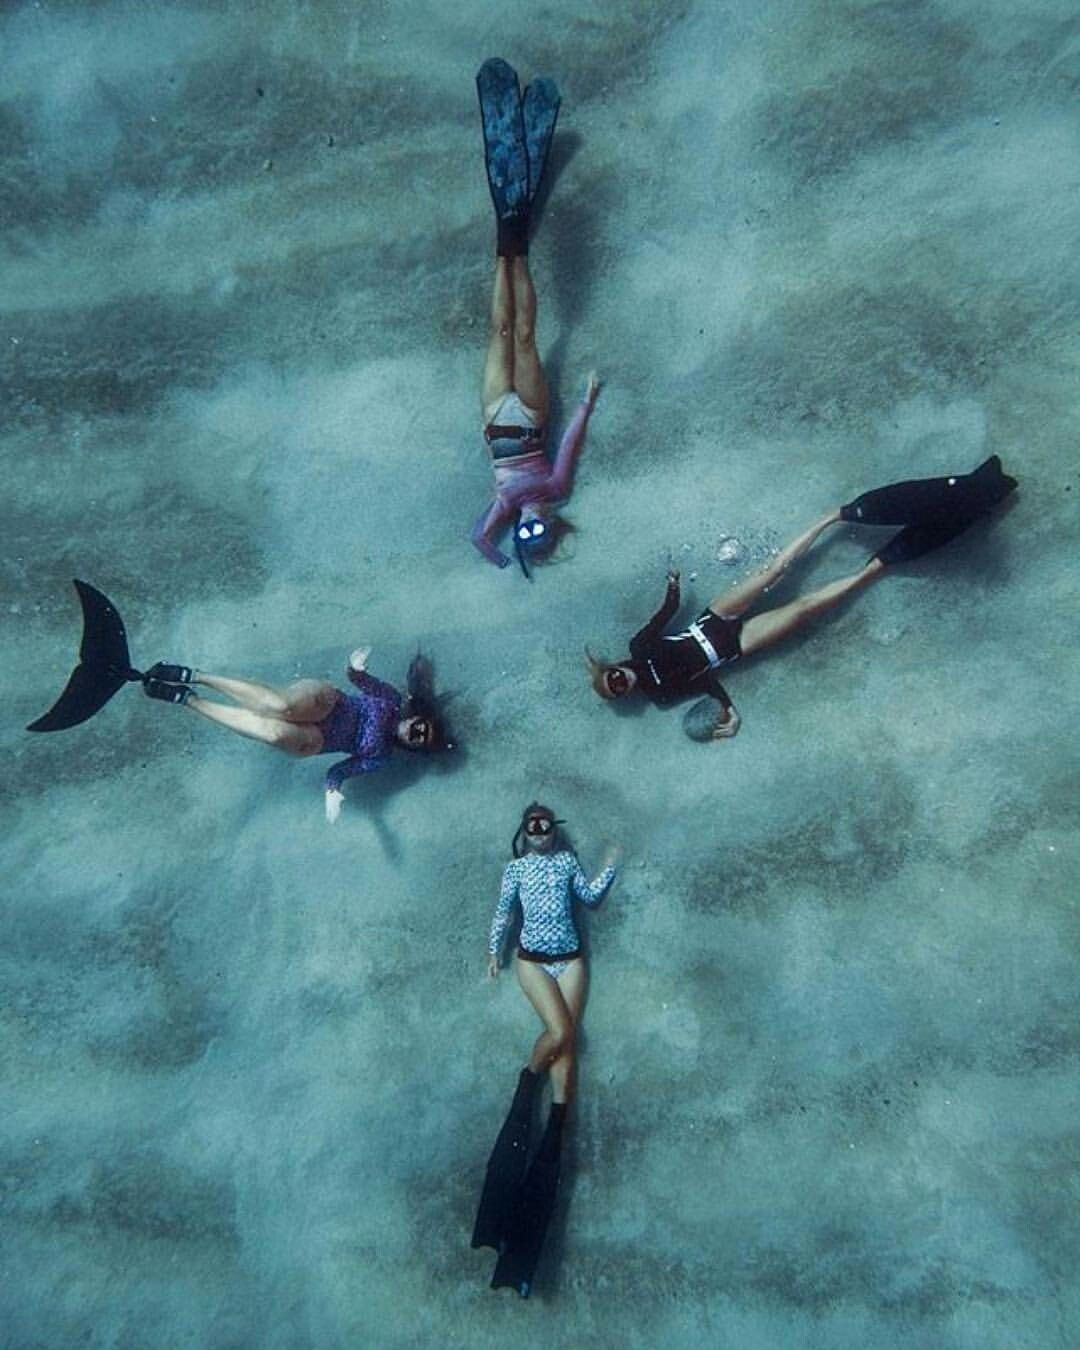 Pin By AaronC On Snorkeling And Free Diving